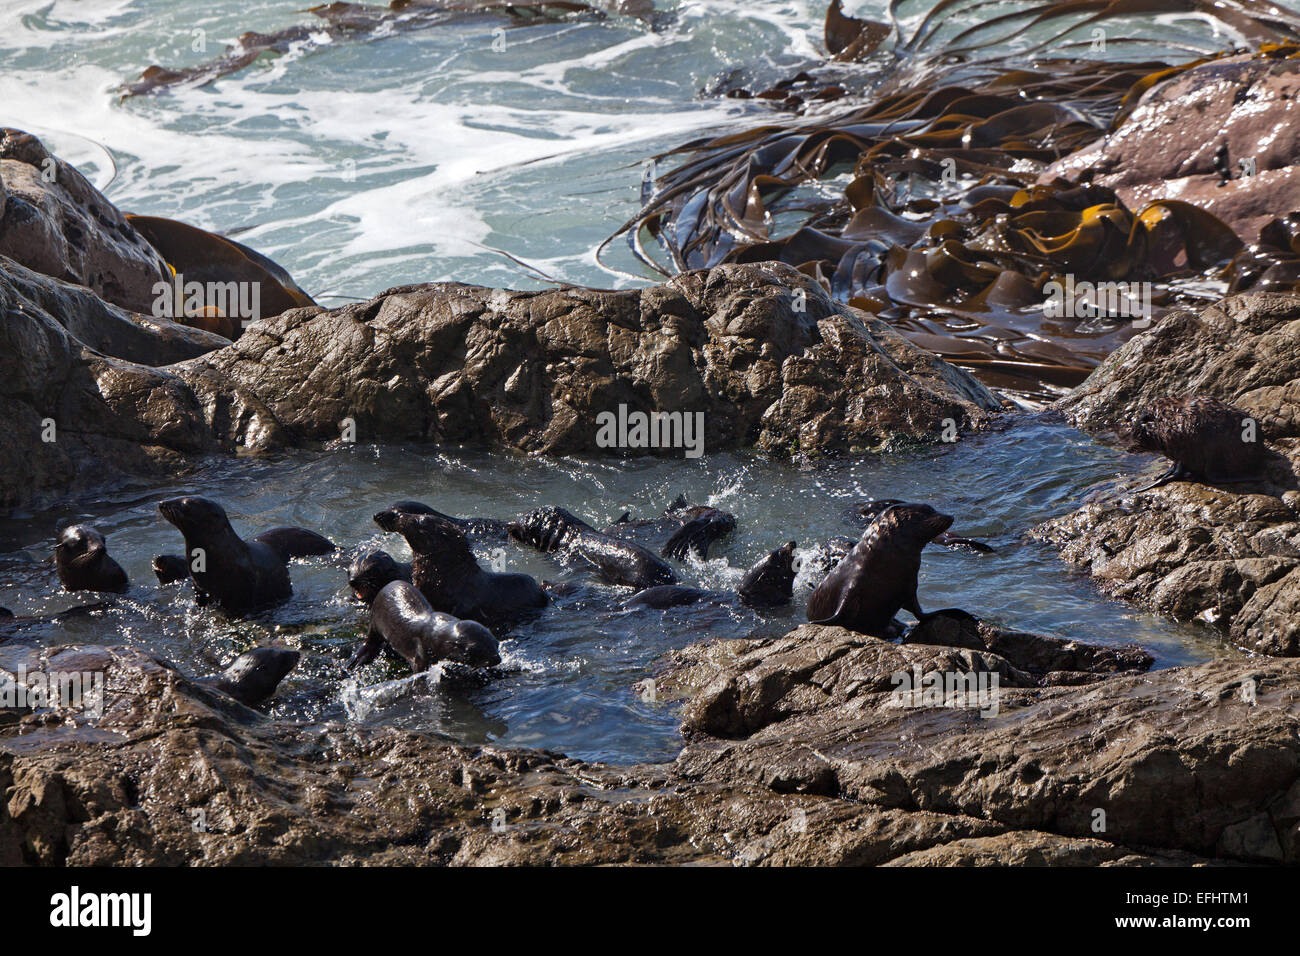 Young seals playing in a protected rocky pool away from the surge, Kaikoura, South Island, New Zealand - Stock Image